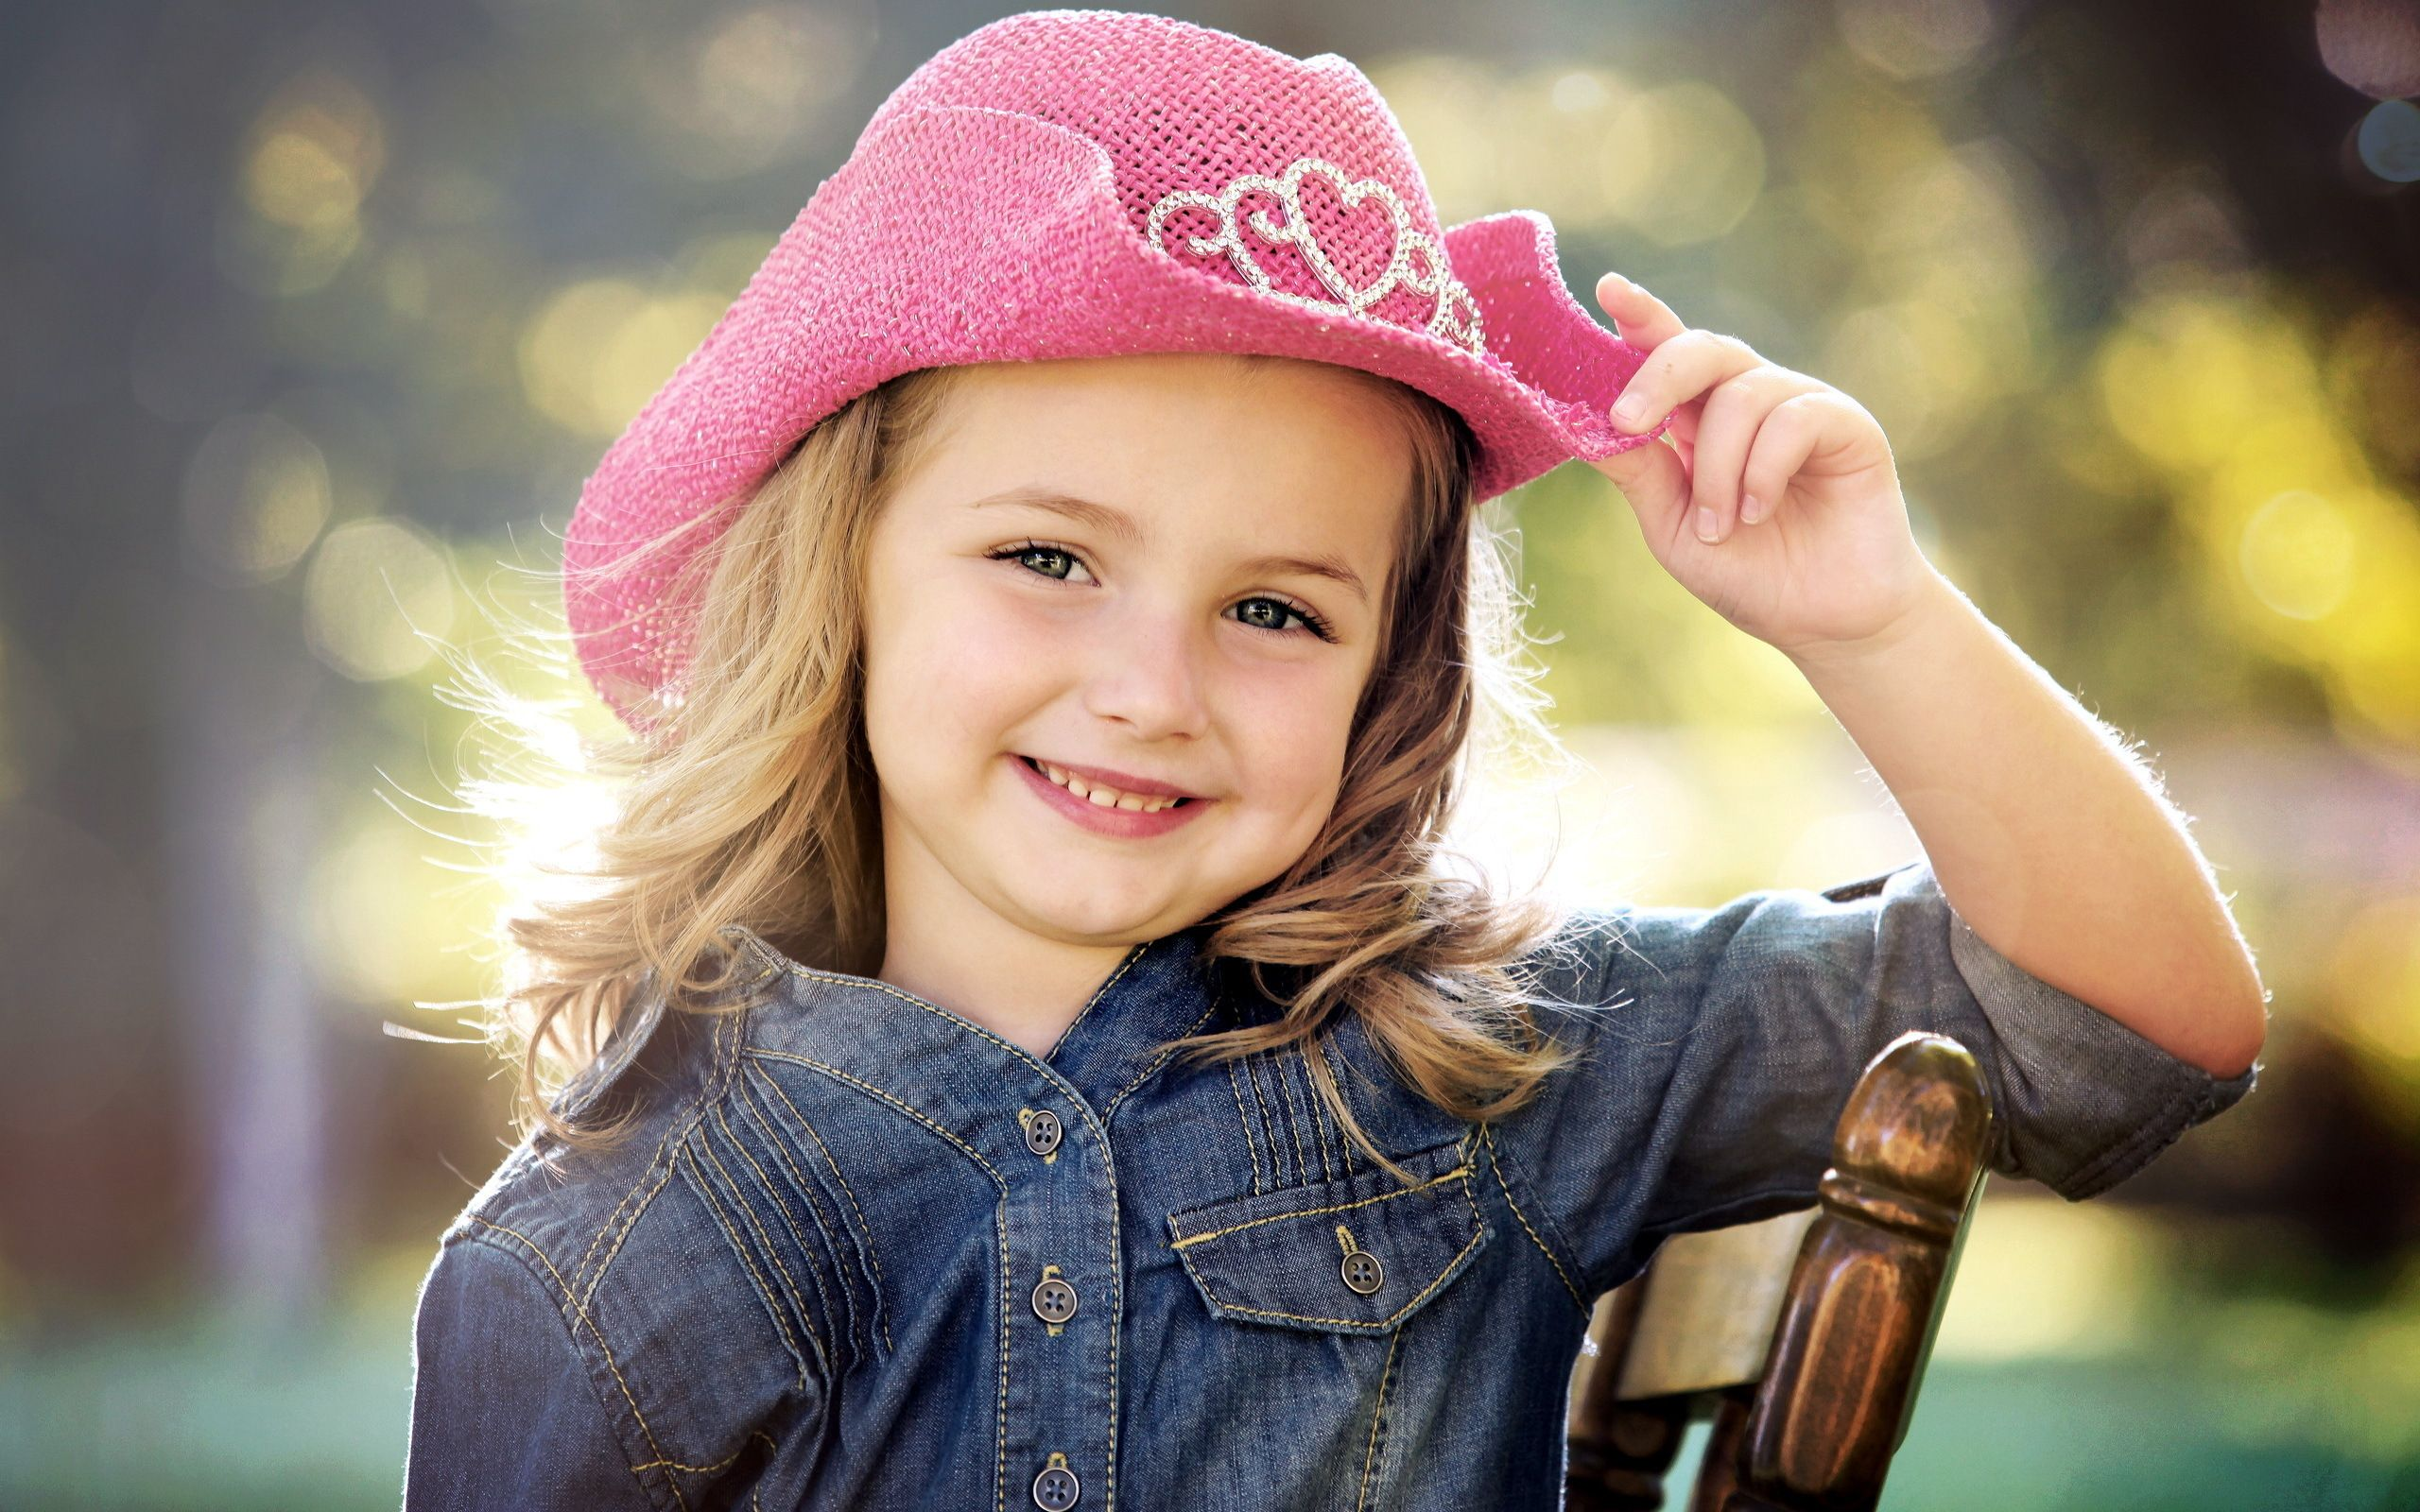 images for > smiling girls with flowers | smiling children